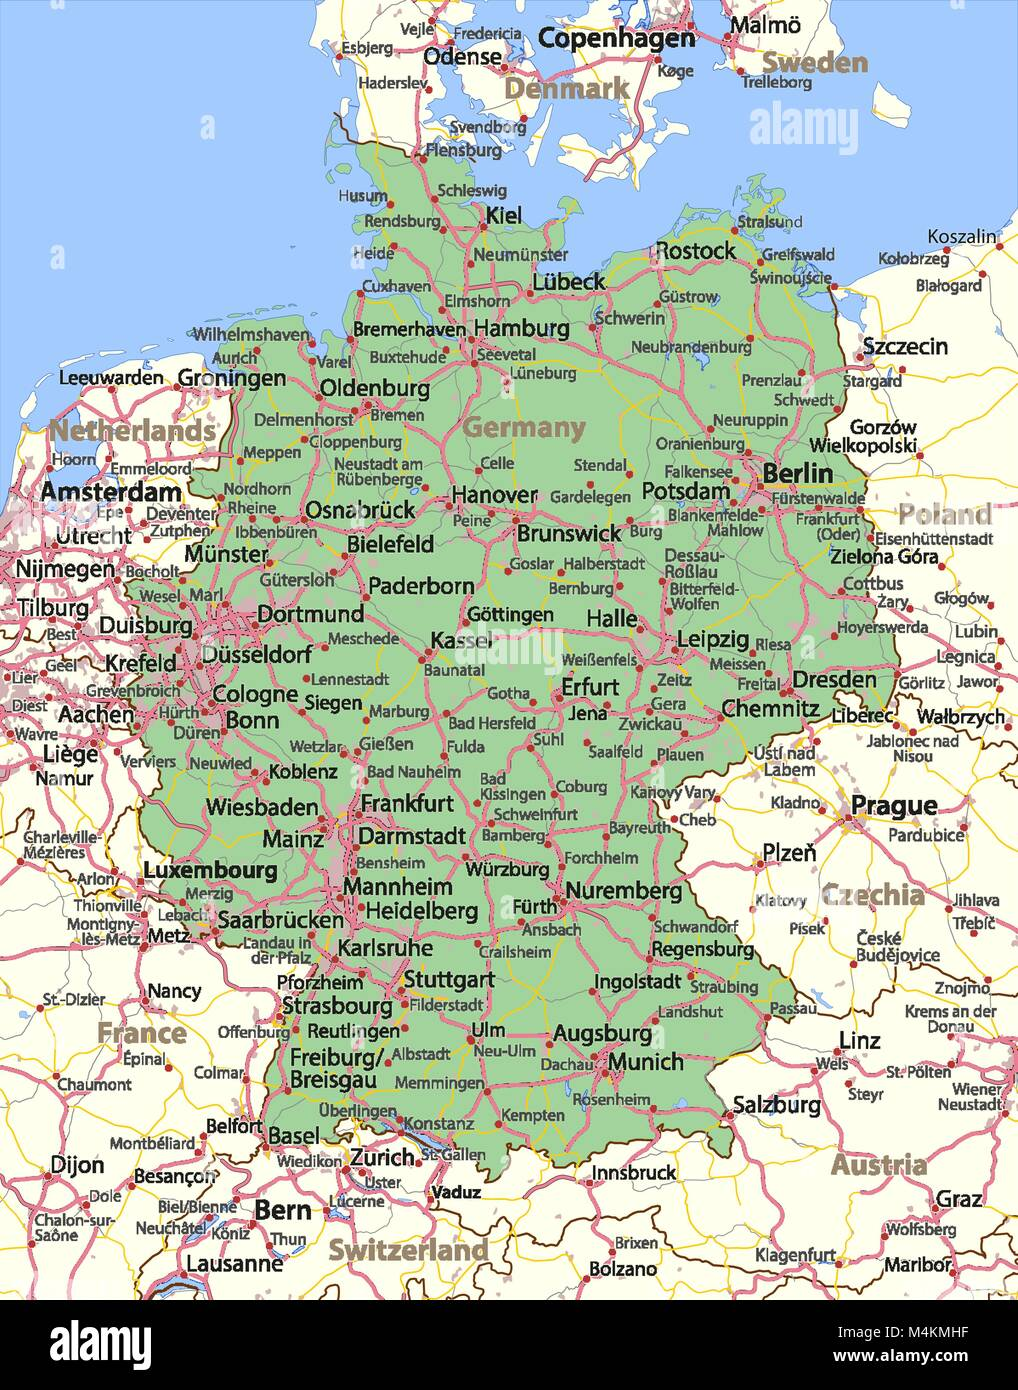 Show Map Of Germany.Map Of Germany Shows Country Borders Urban Areas Place Names And